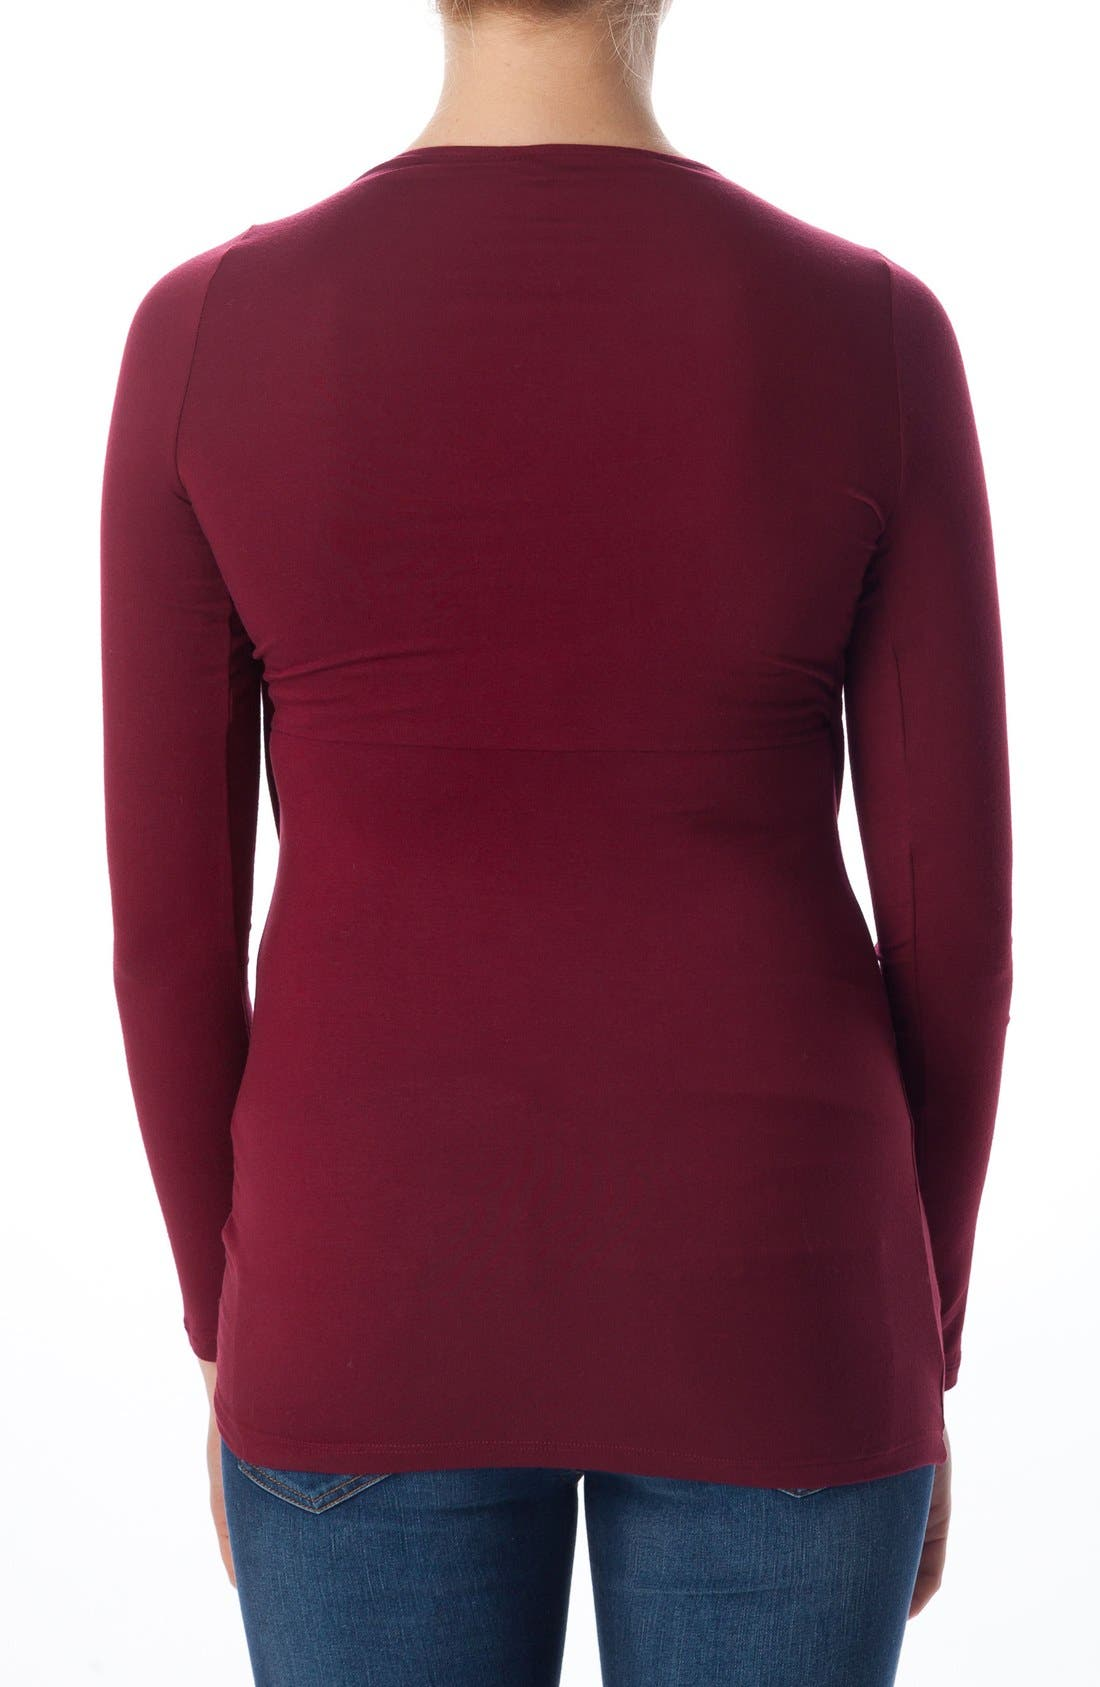 Anemone Maternity Wrap Top,                             Alternate thumbnail 2, color,                             Ruby Wine